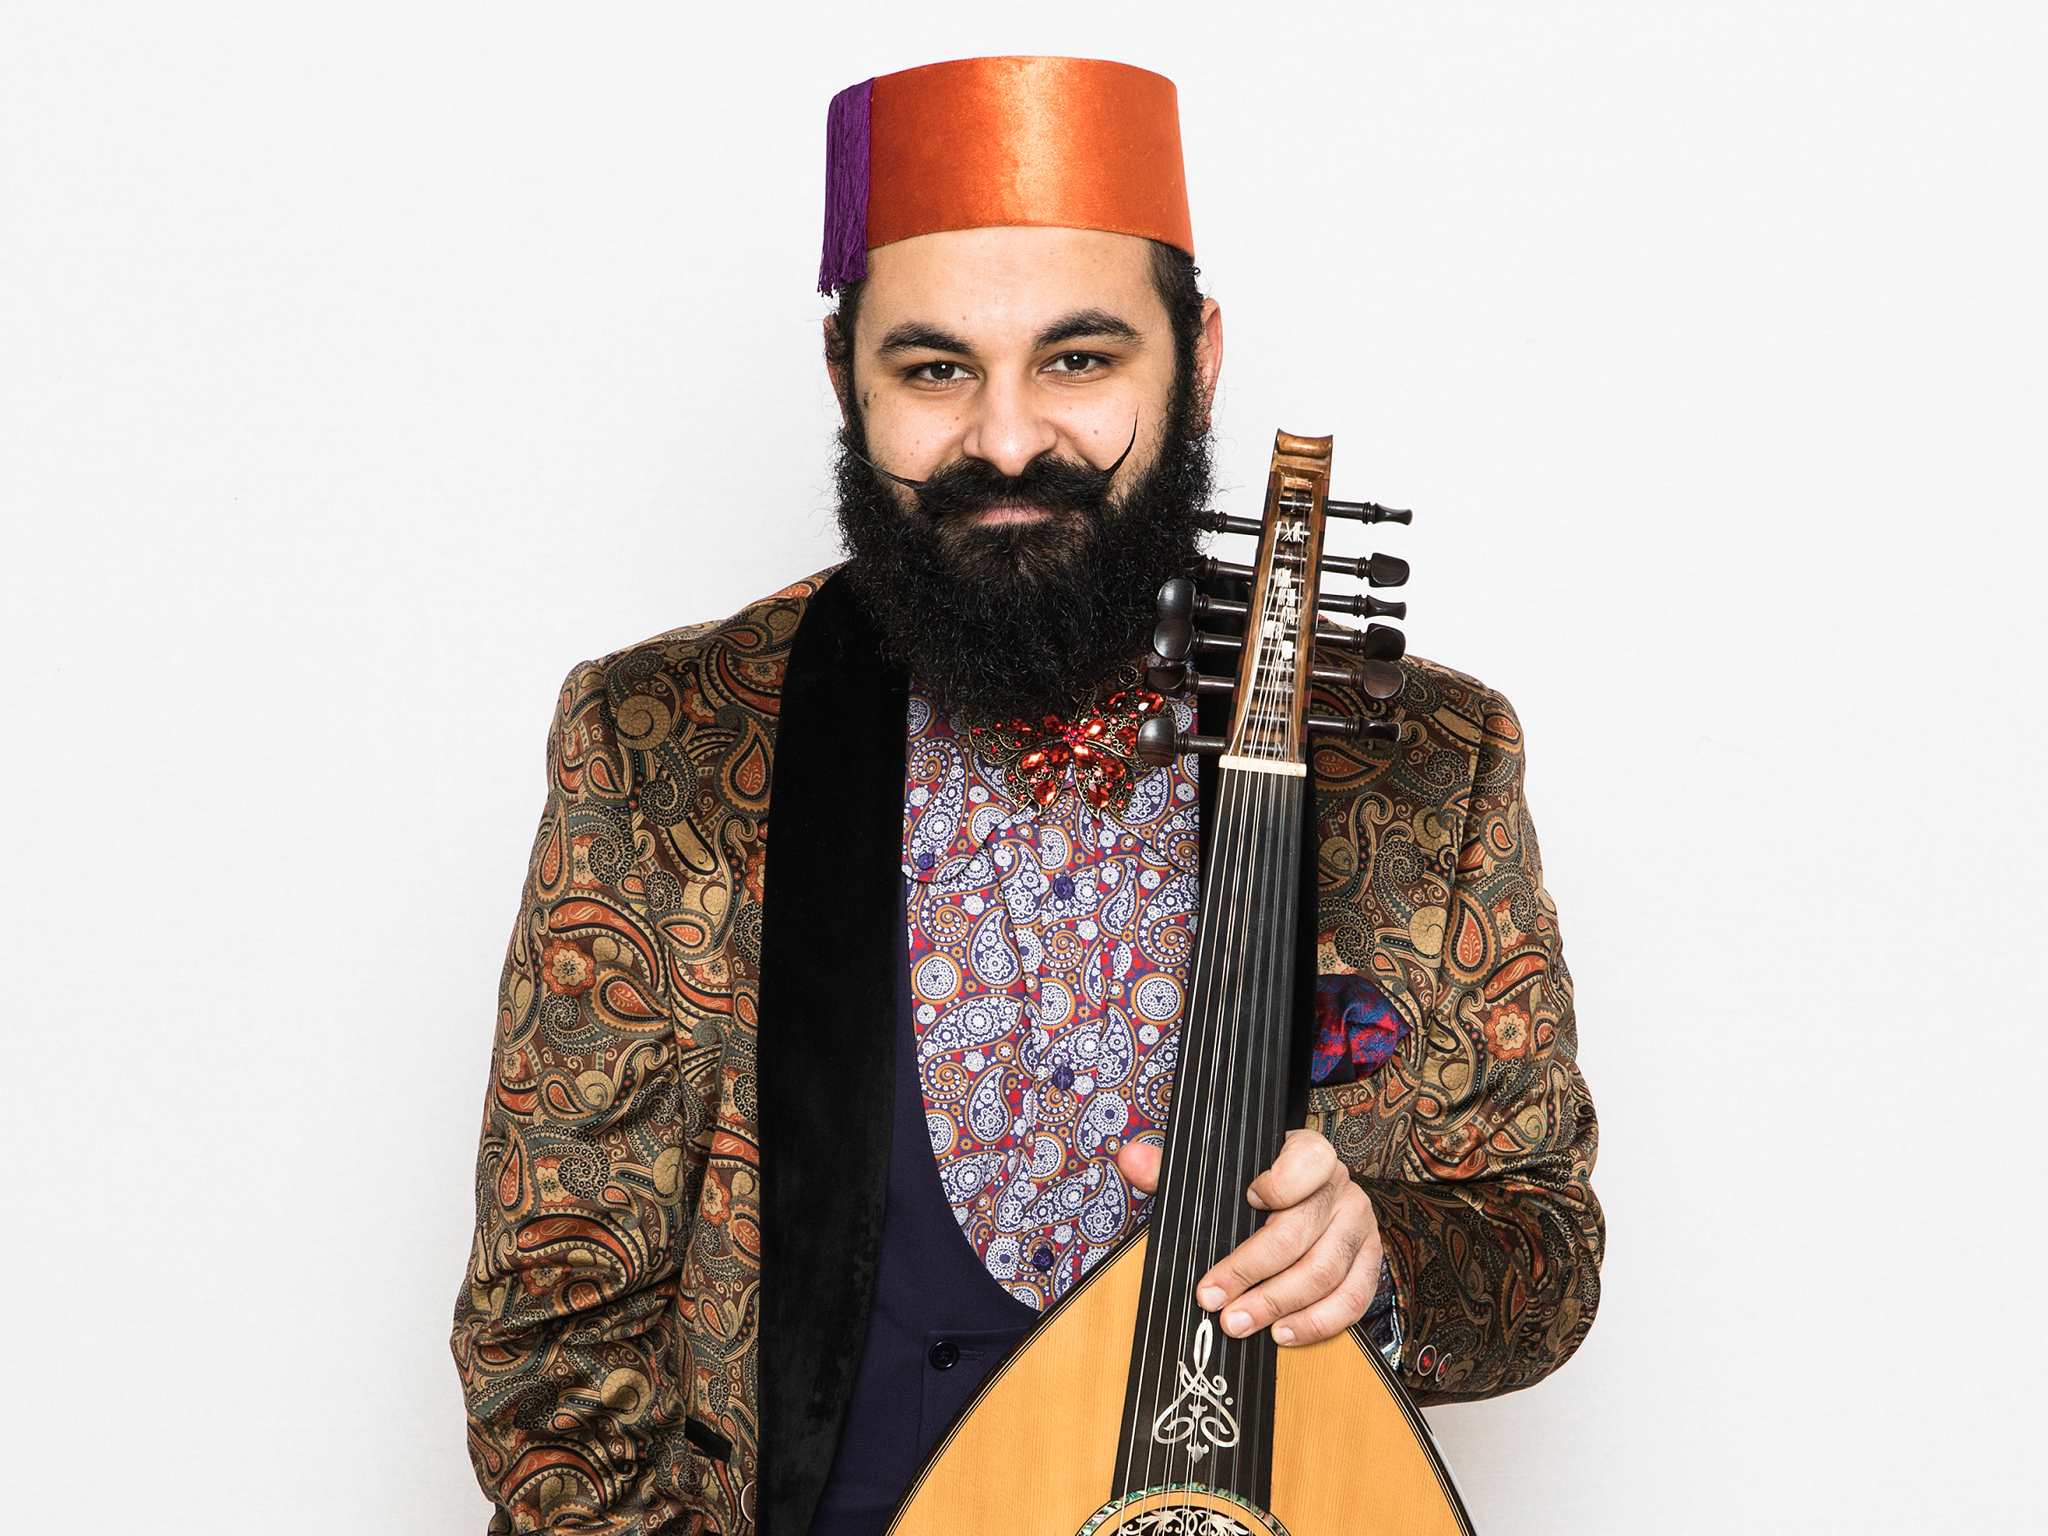 A Grand Oud Time - Joseph Tawadros AM Plucks A Date This June